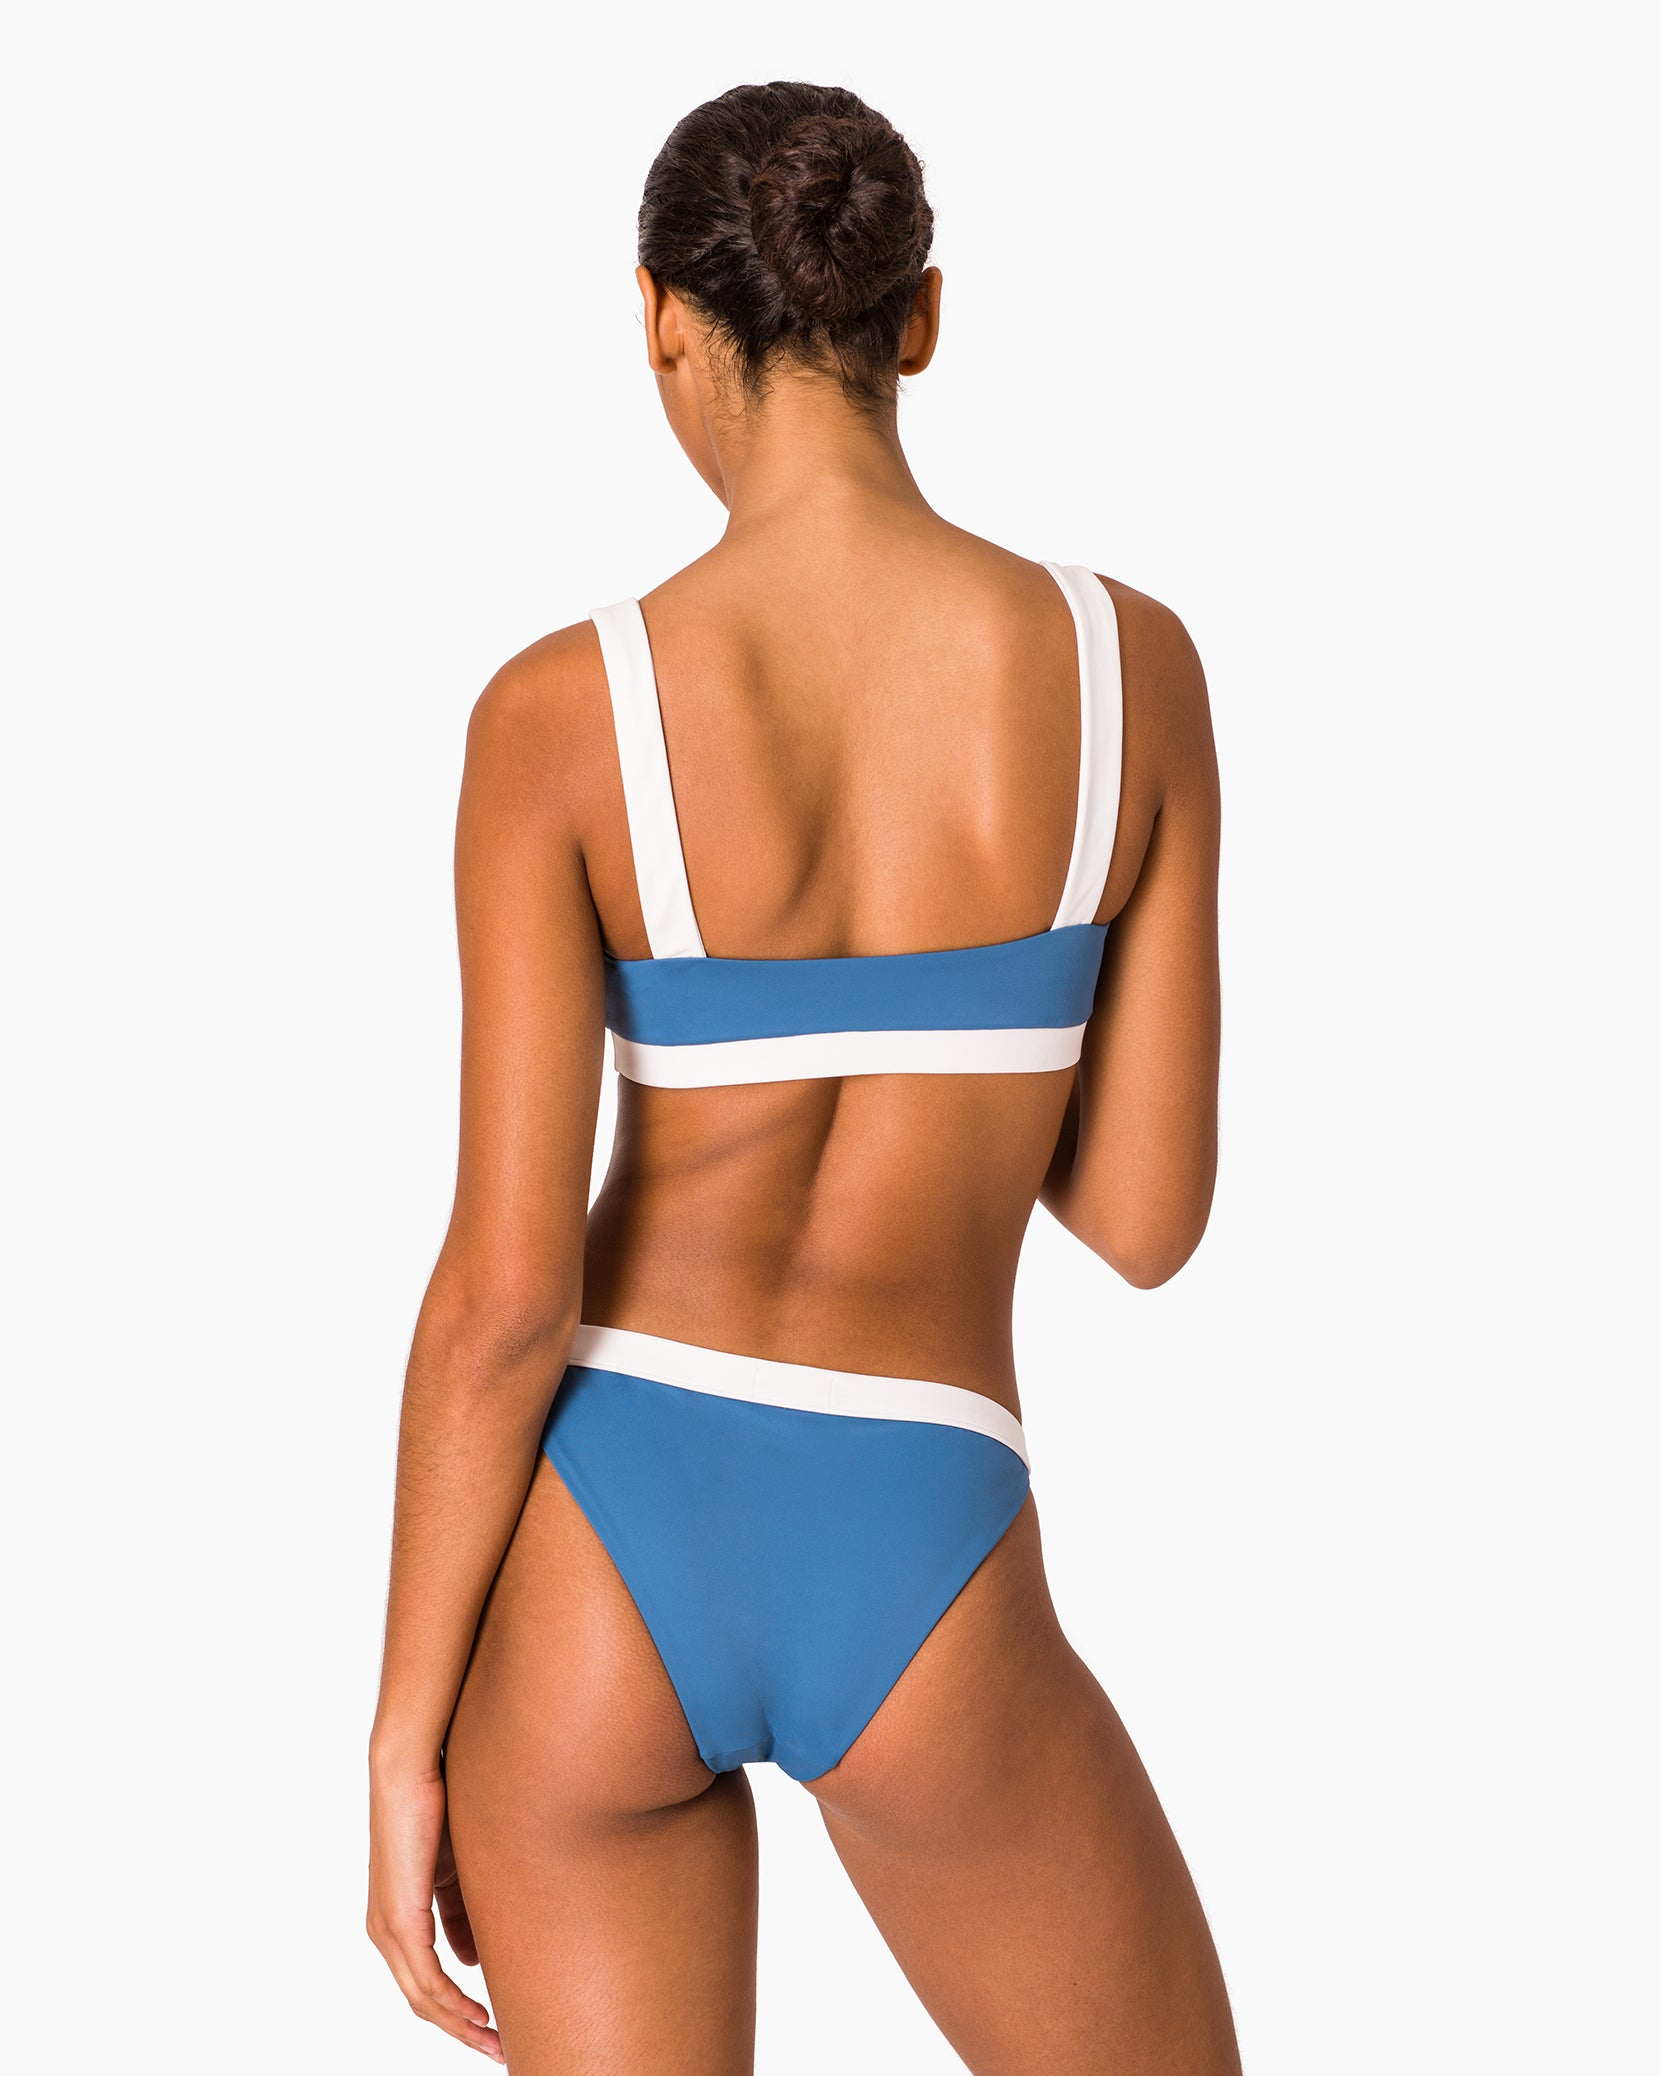 Leila Bikini Bottom in Cobalt Multi - 7 - Onia